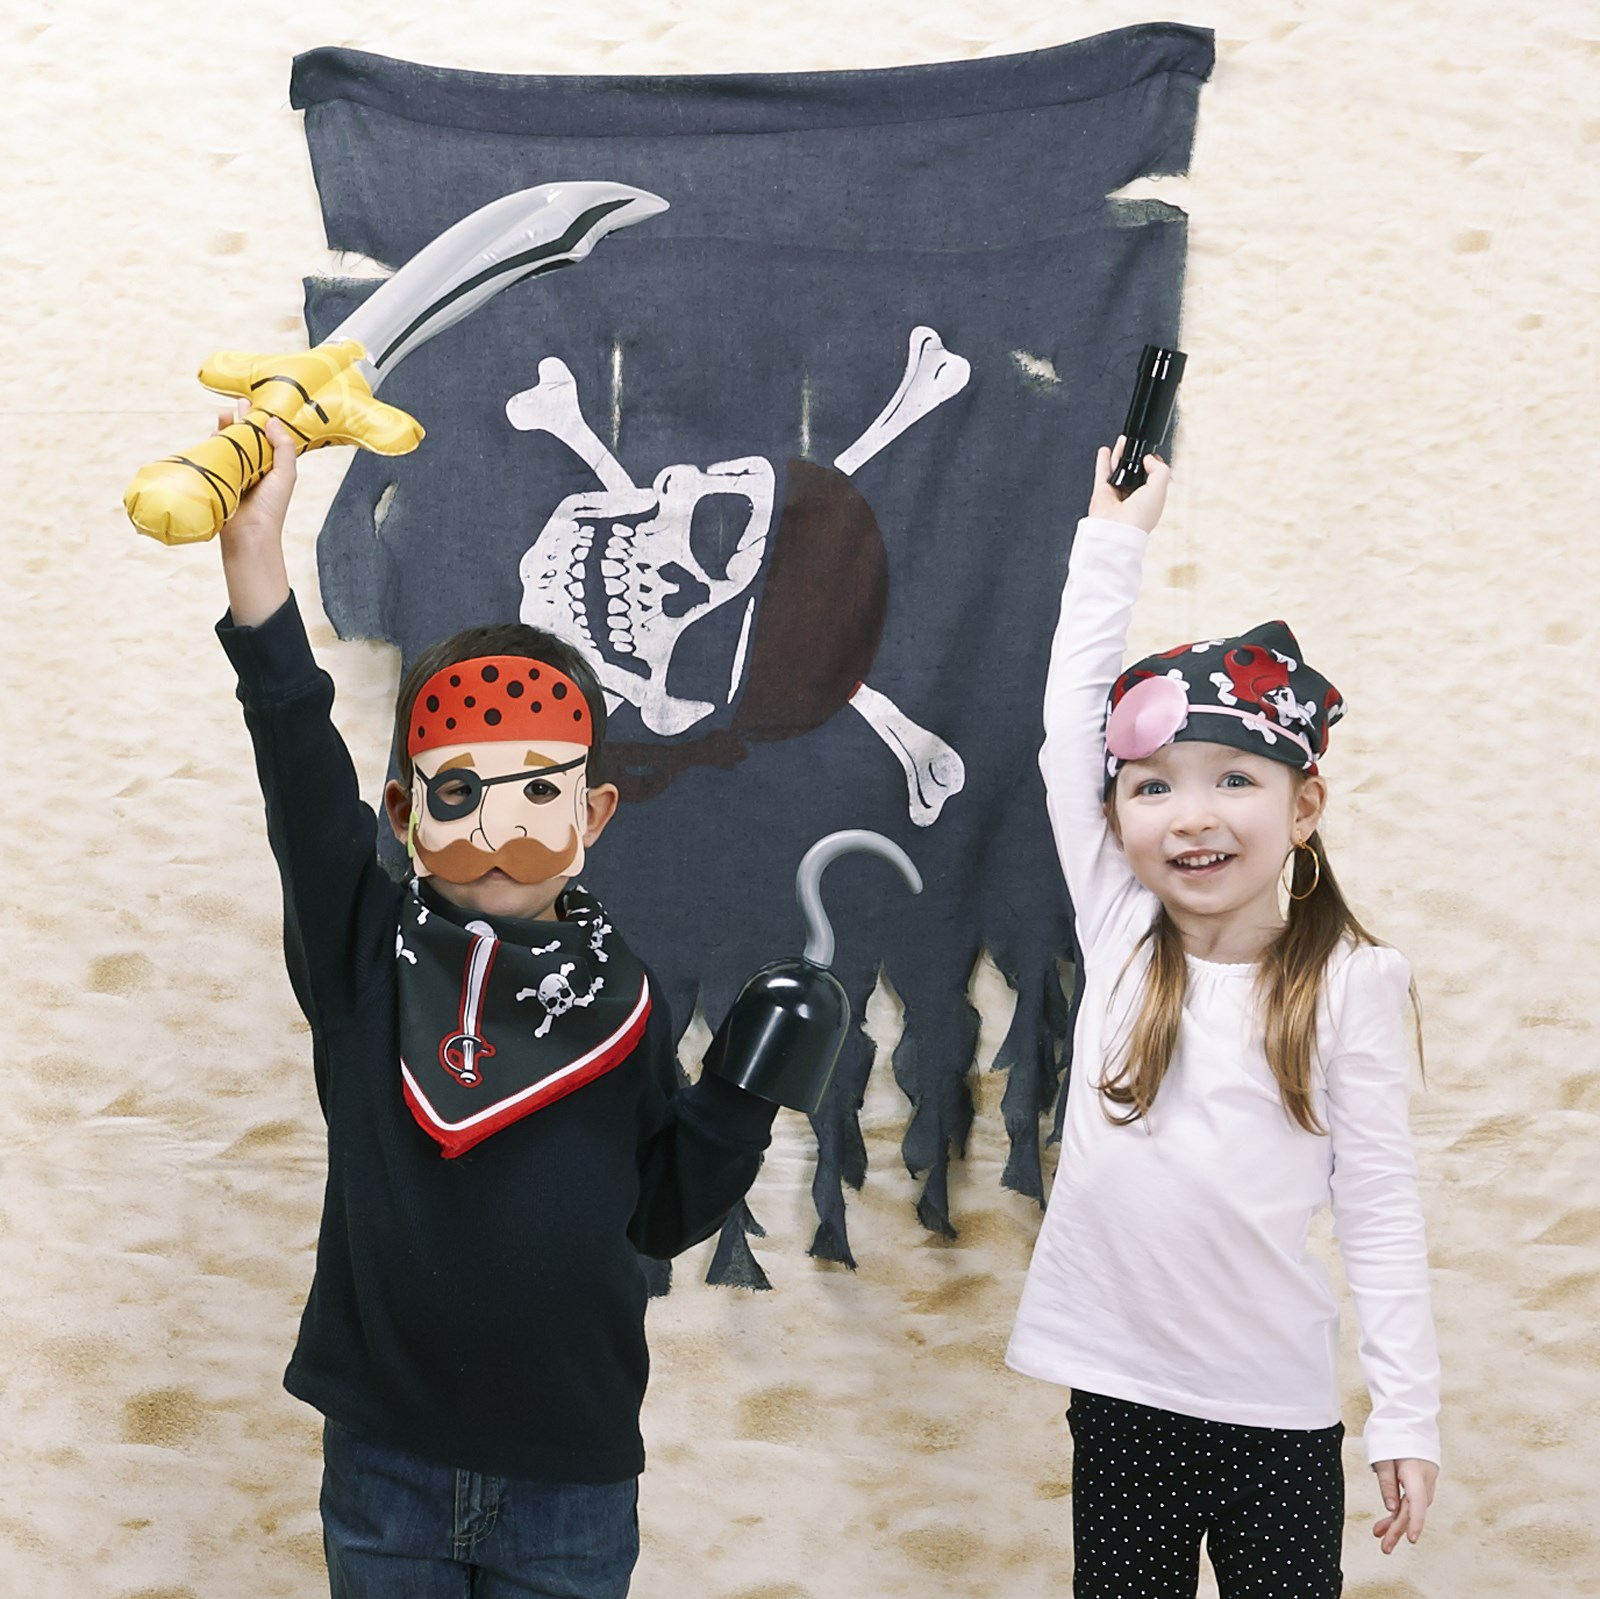 Little Pirates - Photo Booth Kit - Photo Booth Materials